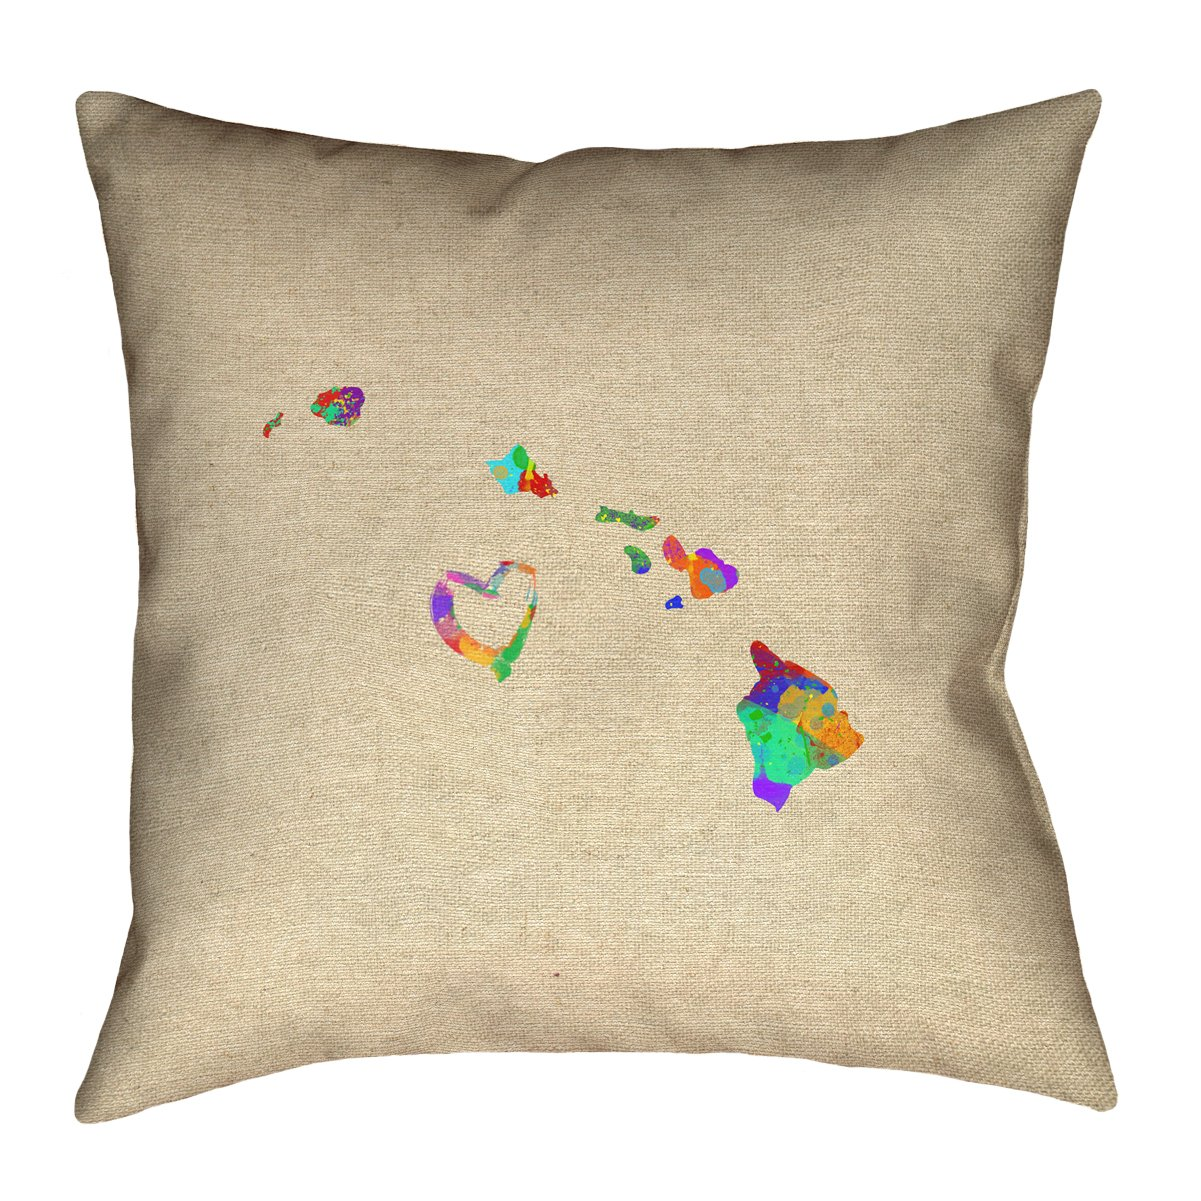 ArtVerse Katelyn Smith Hawaii Love Watercolor 26 x 26 Pillow-Faux Linen Updated Fabric Double Sided Print with Concealed Zipper /& Insert